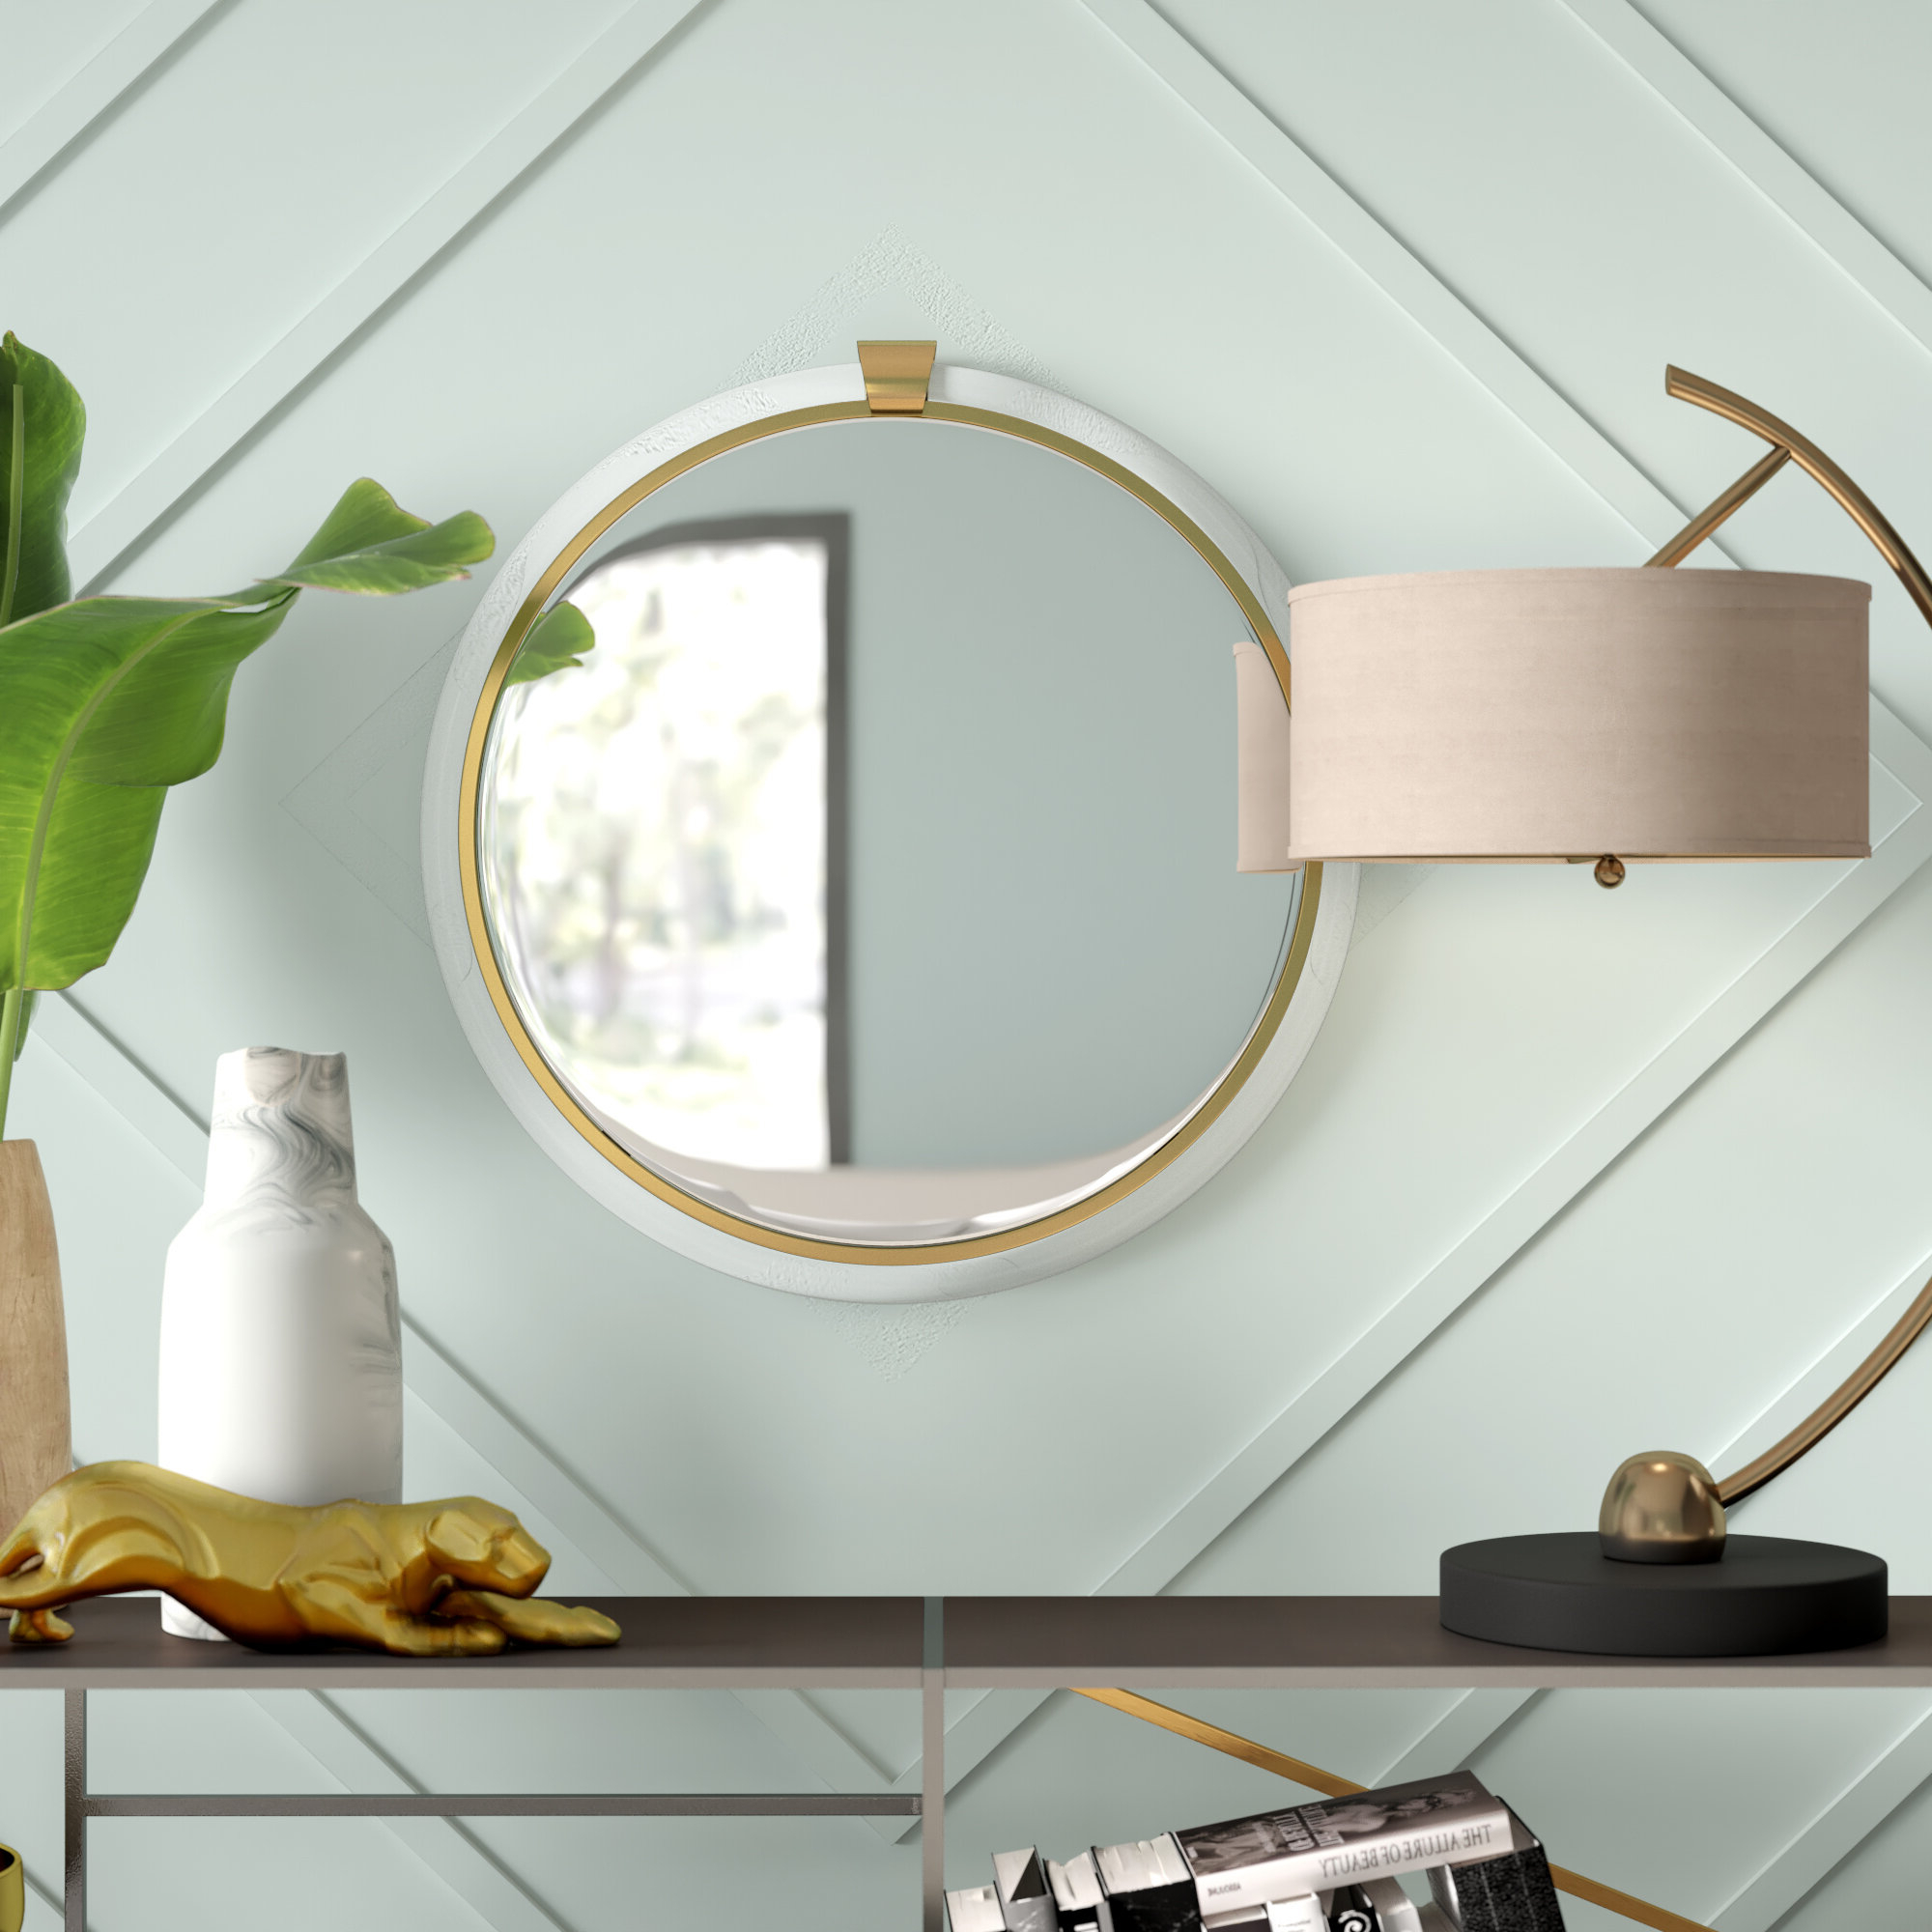 Acrylic Wall Mirrors With Regard To Most Recent Febus Round Acrylic Wall Accent Mirror (View 10 of 20)